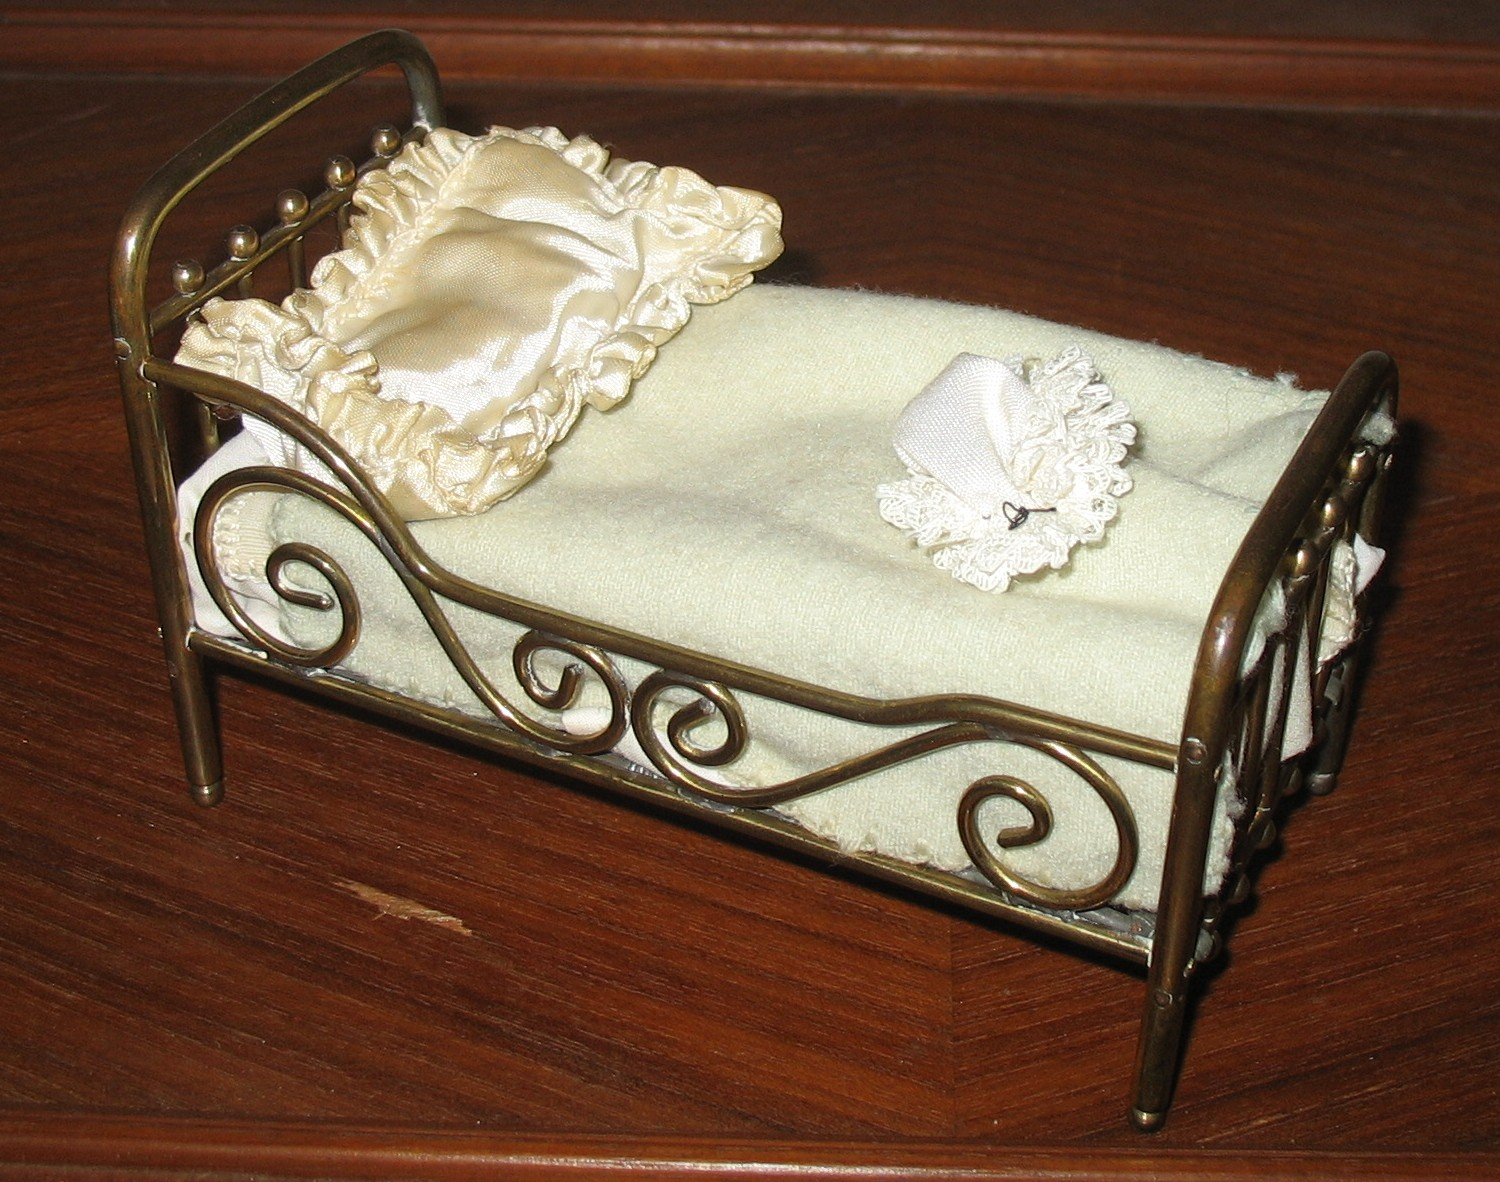 A brass bed with a low head